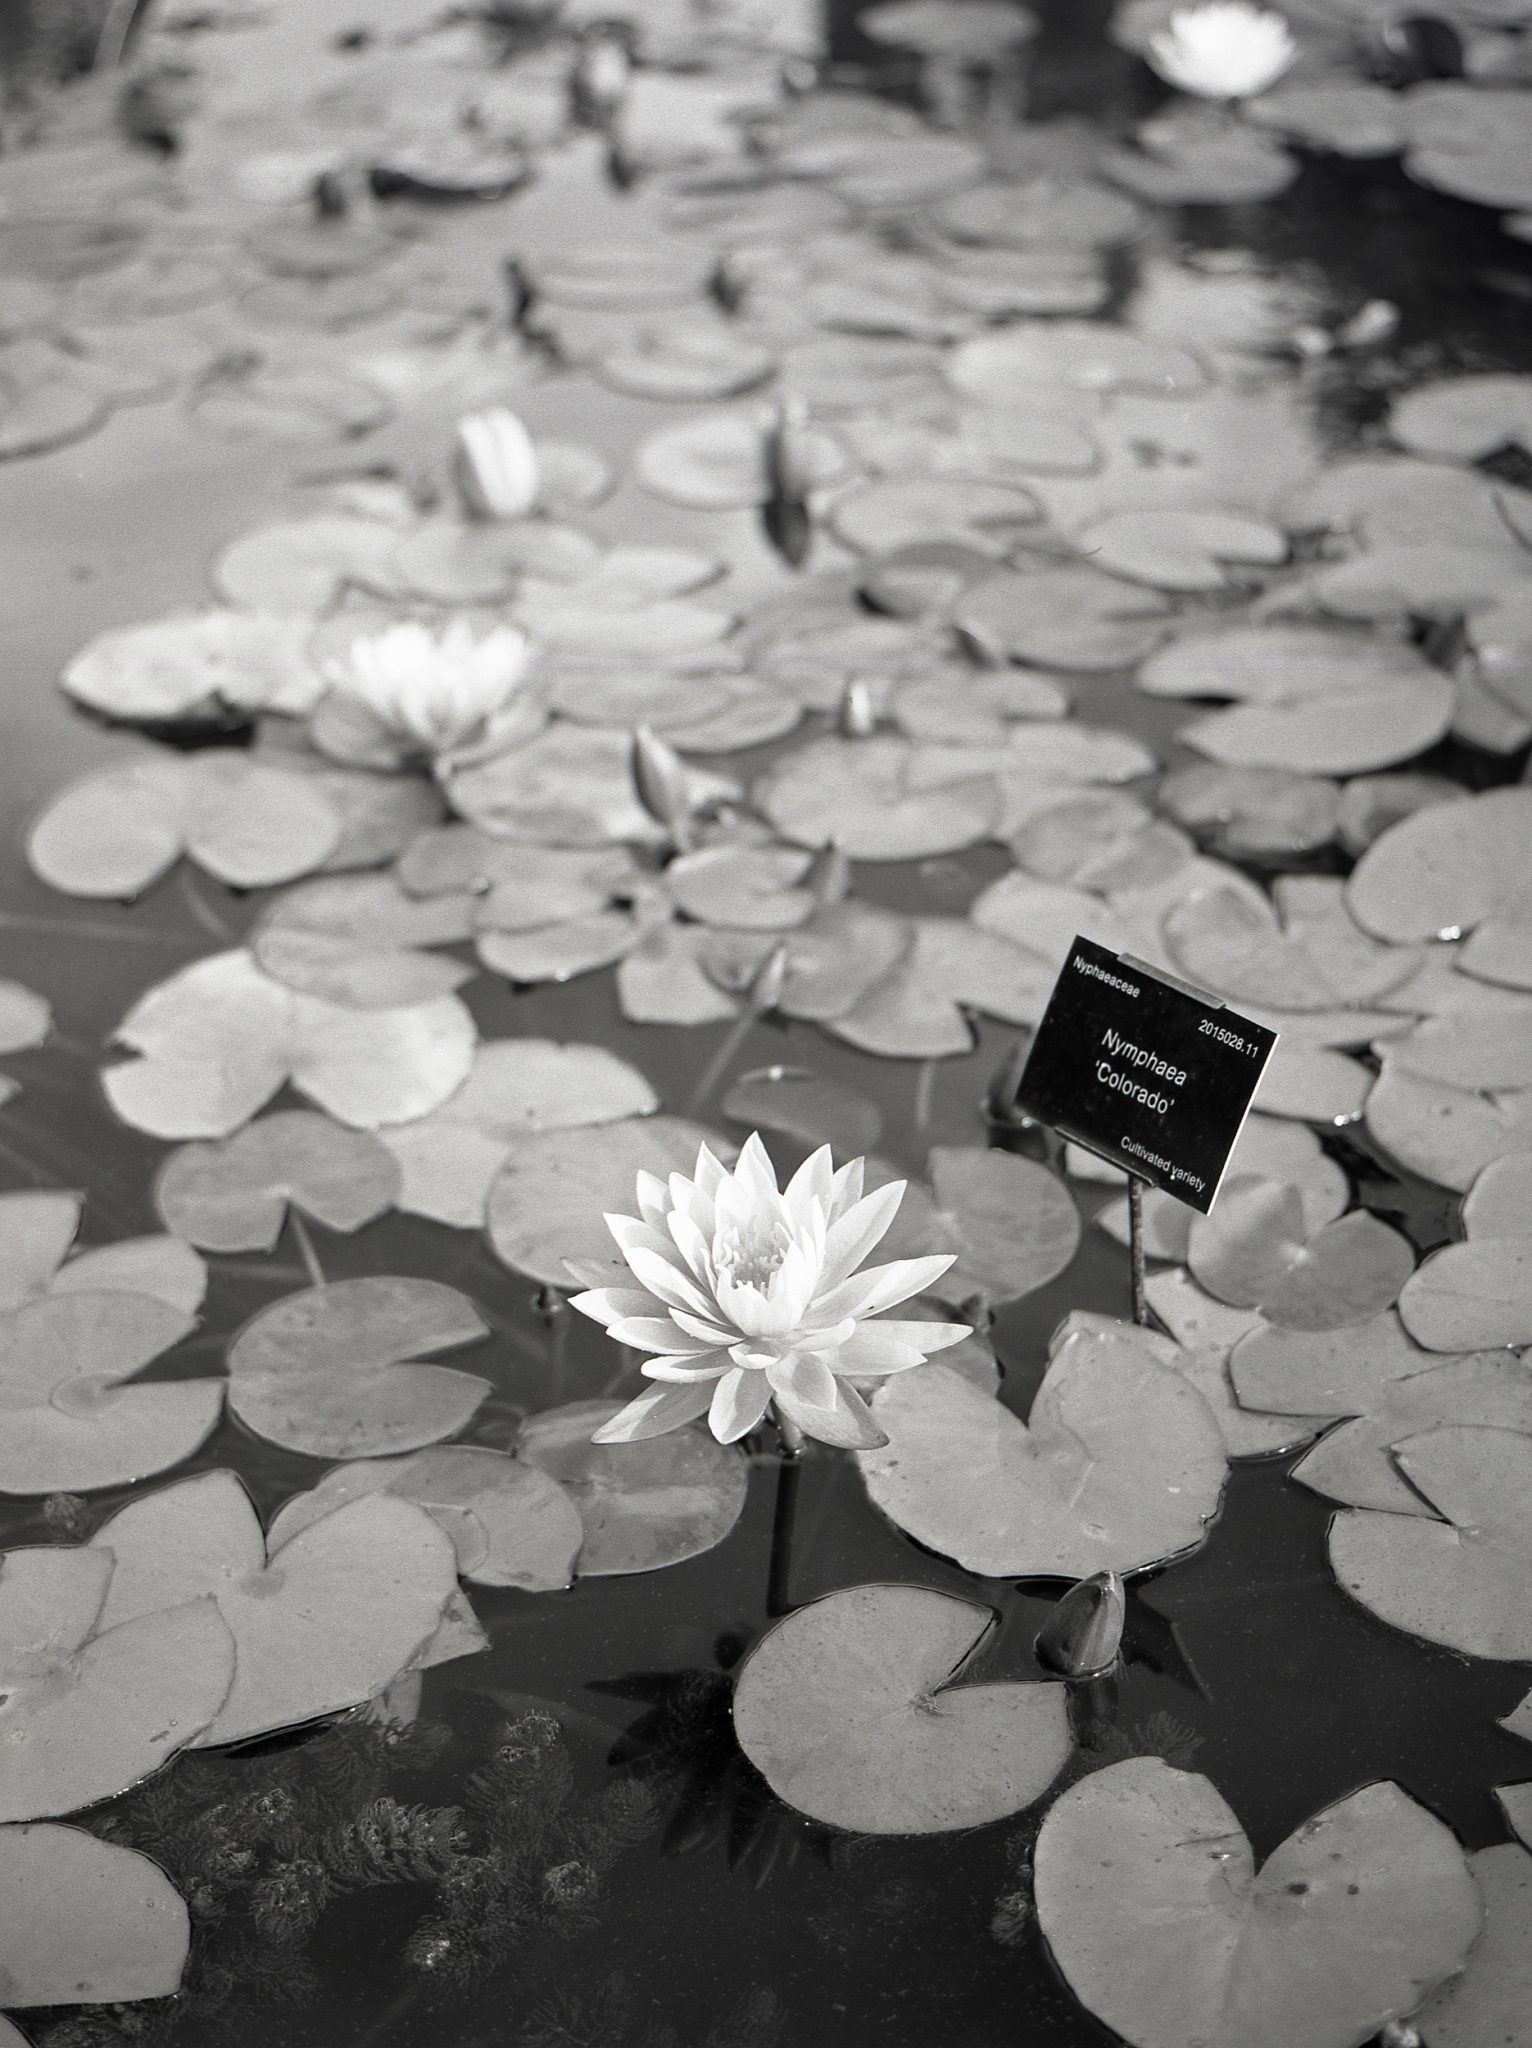 Flowers on Fujifilm Acros 100